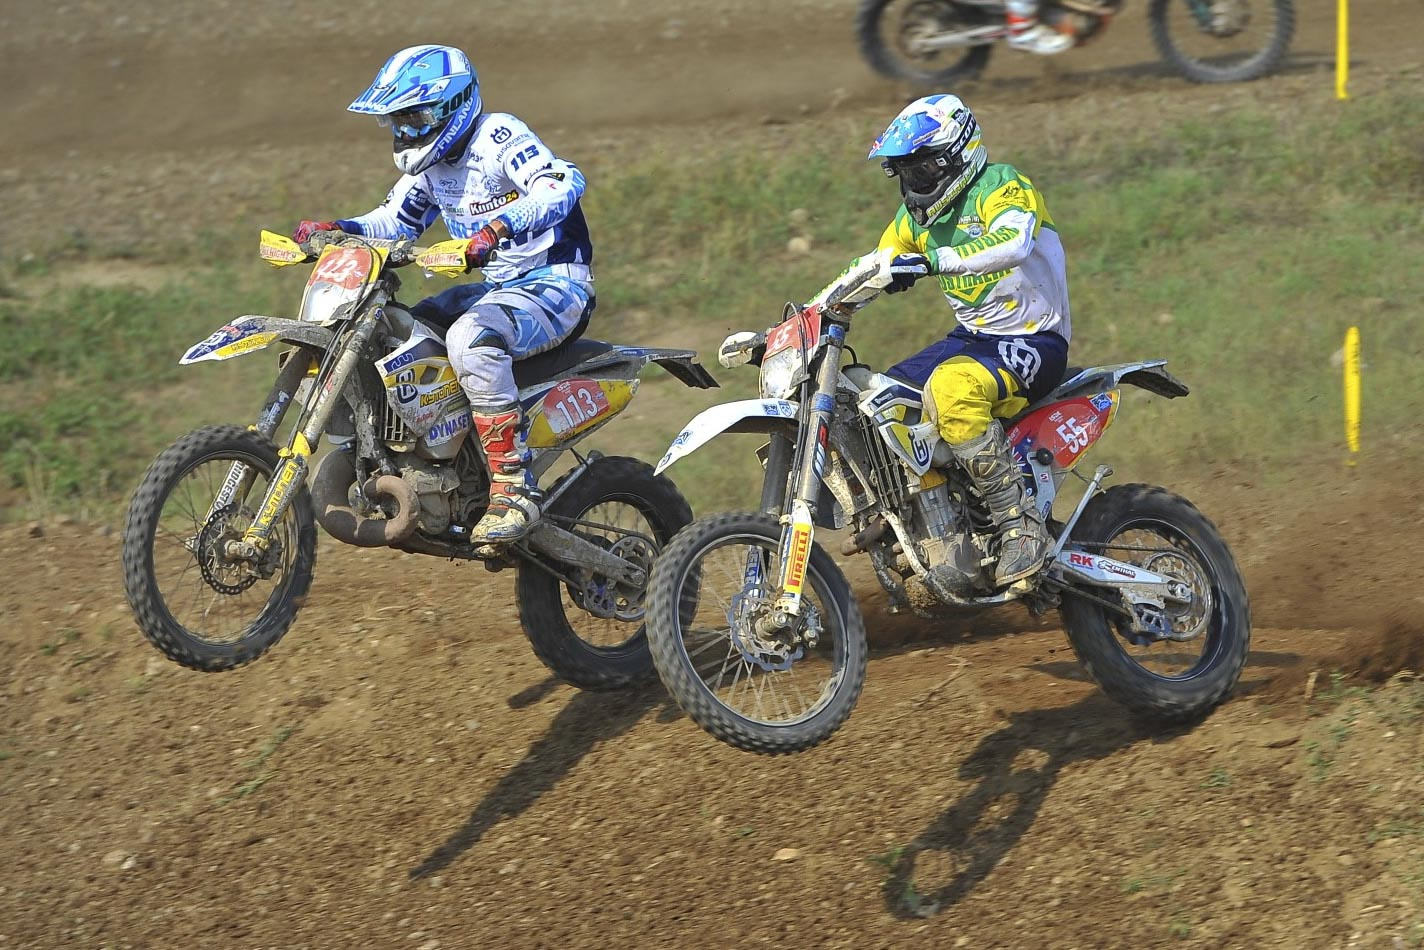 Husqvarna-mounted Aussie team members Lachy Stanford and Glenn Kearney flew the flag proudly in Slovakia on their way to equalling Australia's best ever finish in World Trophy classification. Pics: Mark Kariya